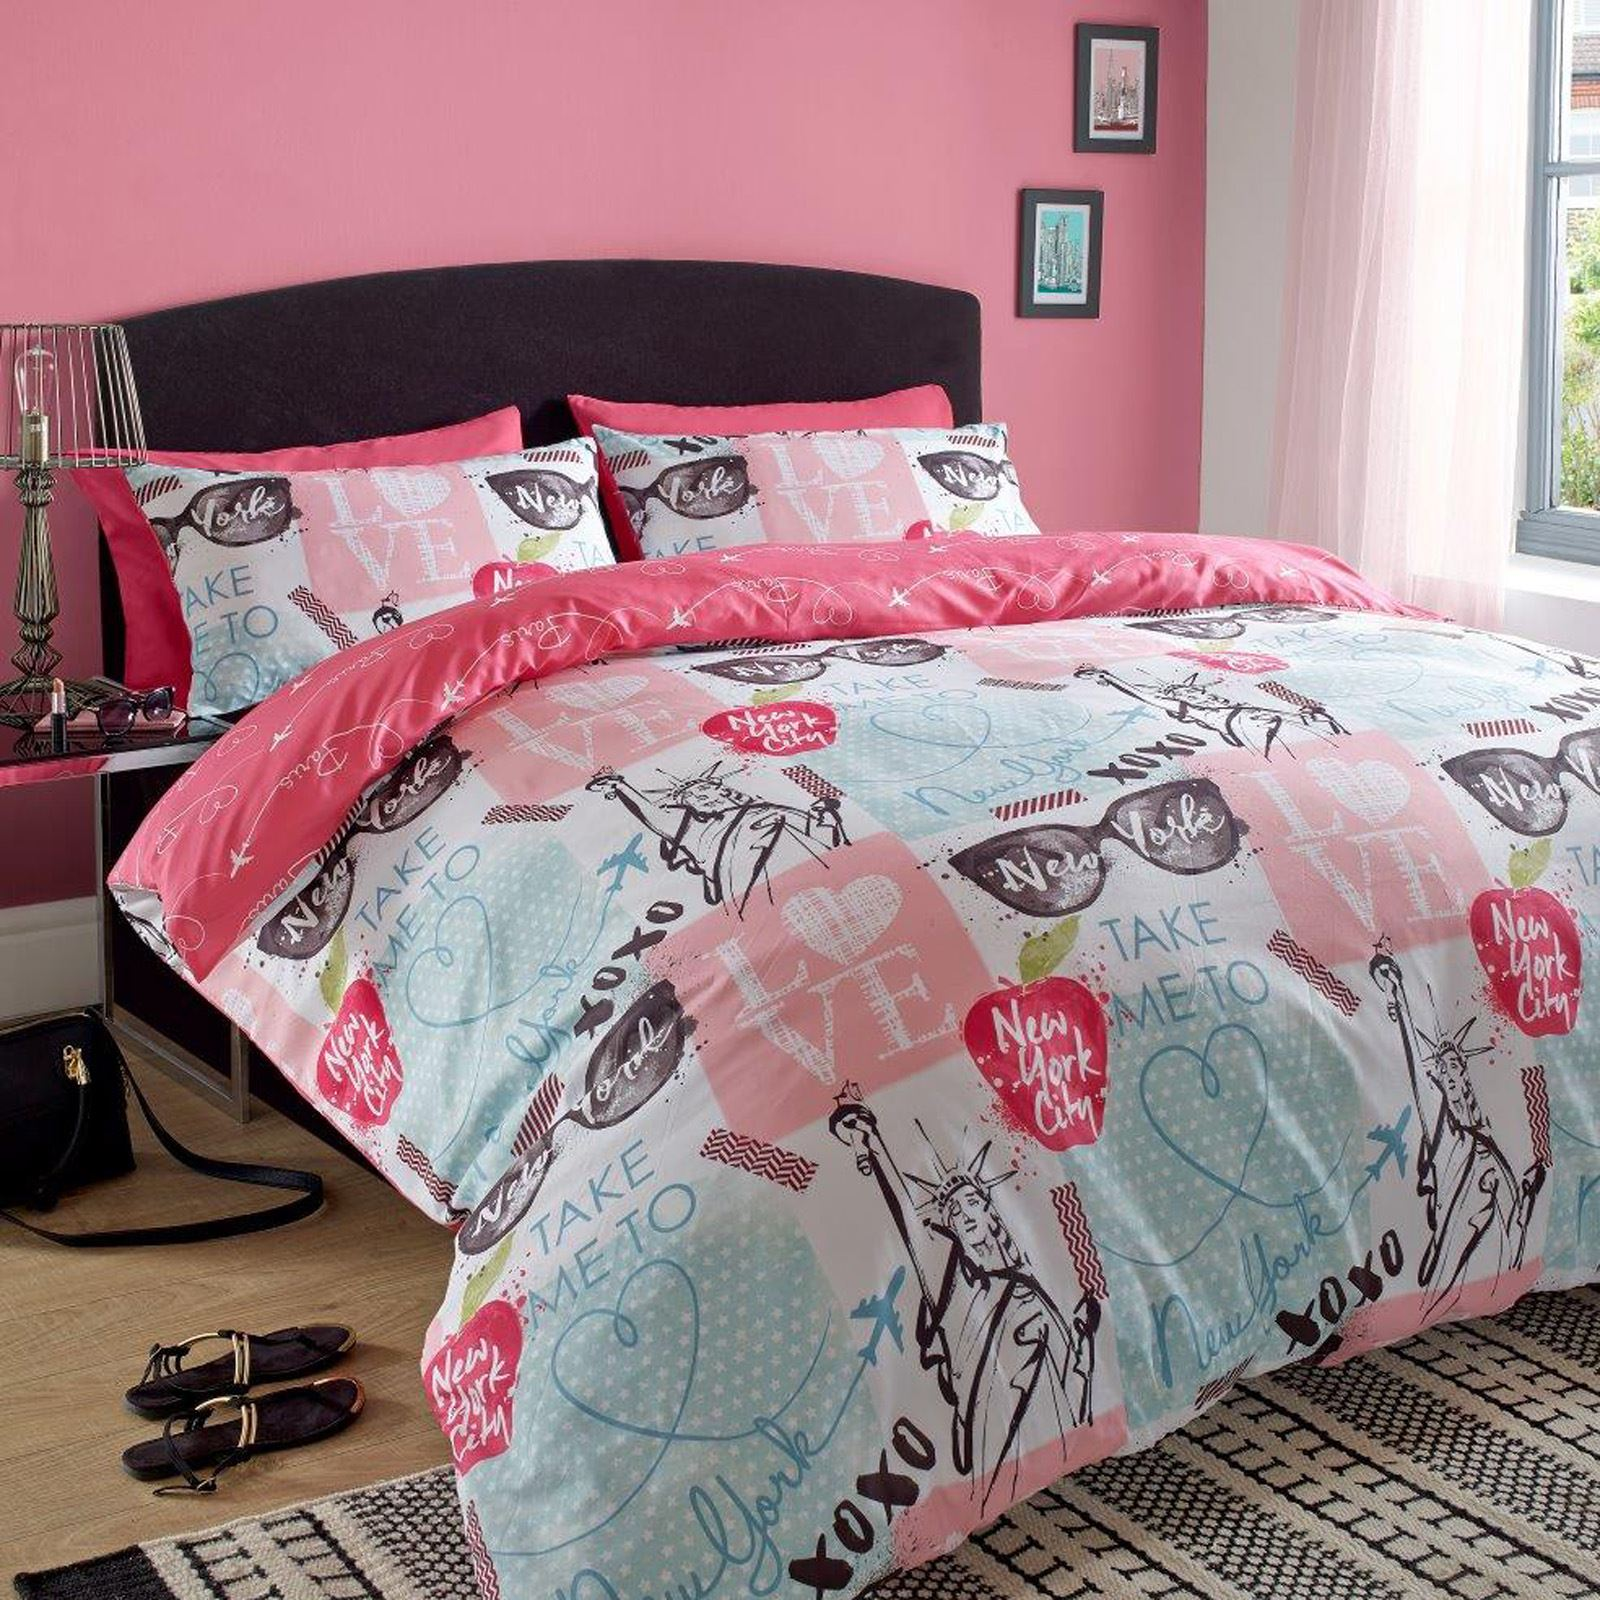 day set img cover next family in gaveno htm inspiration bedding p ss a s duvet address email cavailia teal friend